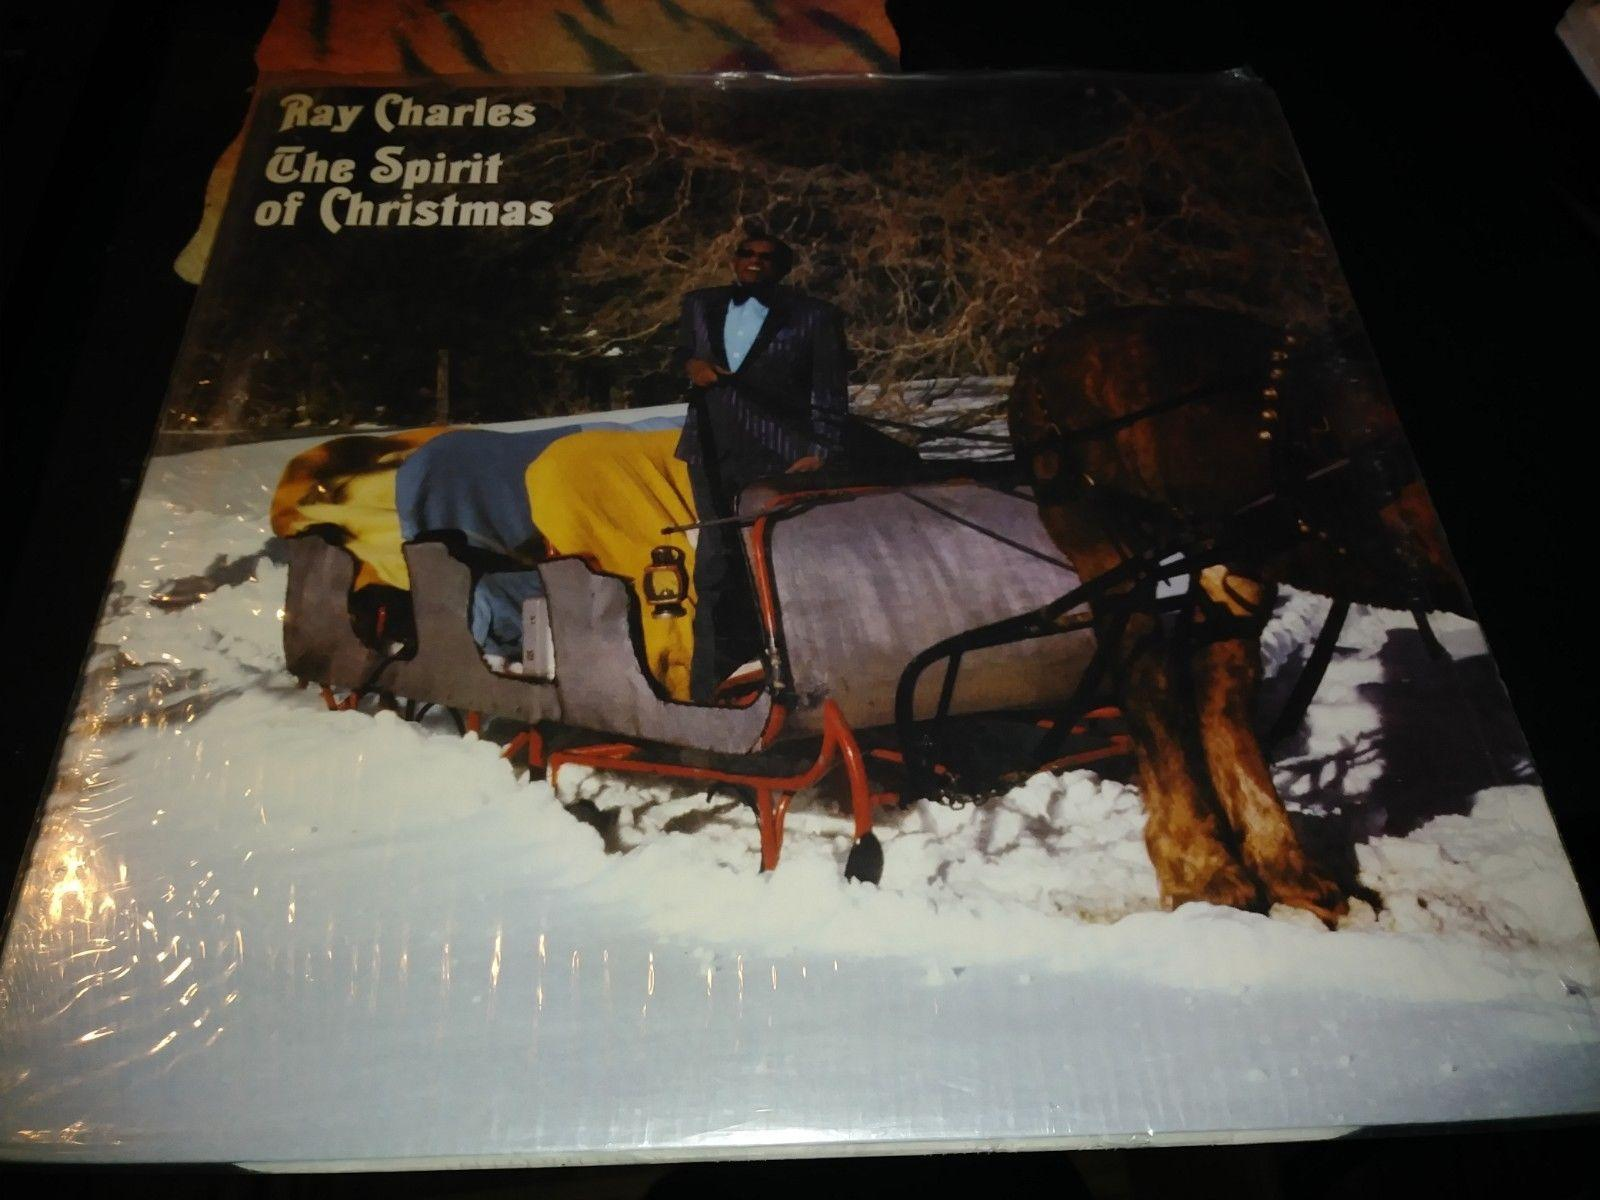 RAY CHARLES THE SPIRIT OF CHRISTMAS  FREE SHIPPING